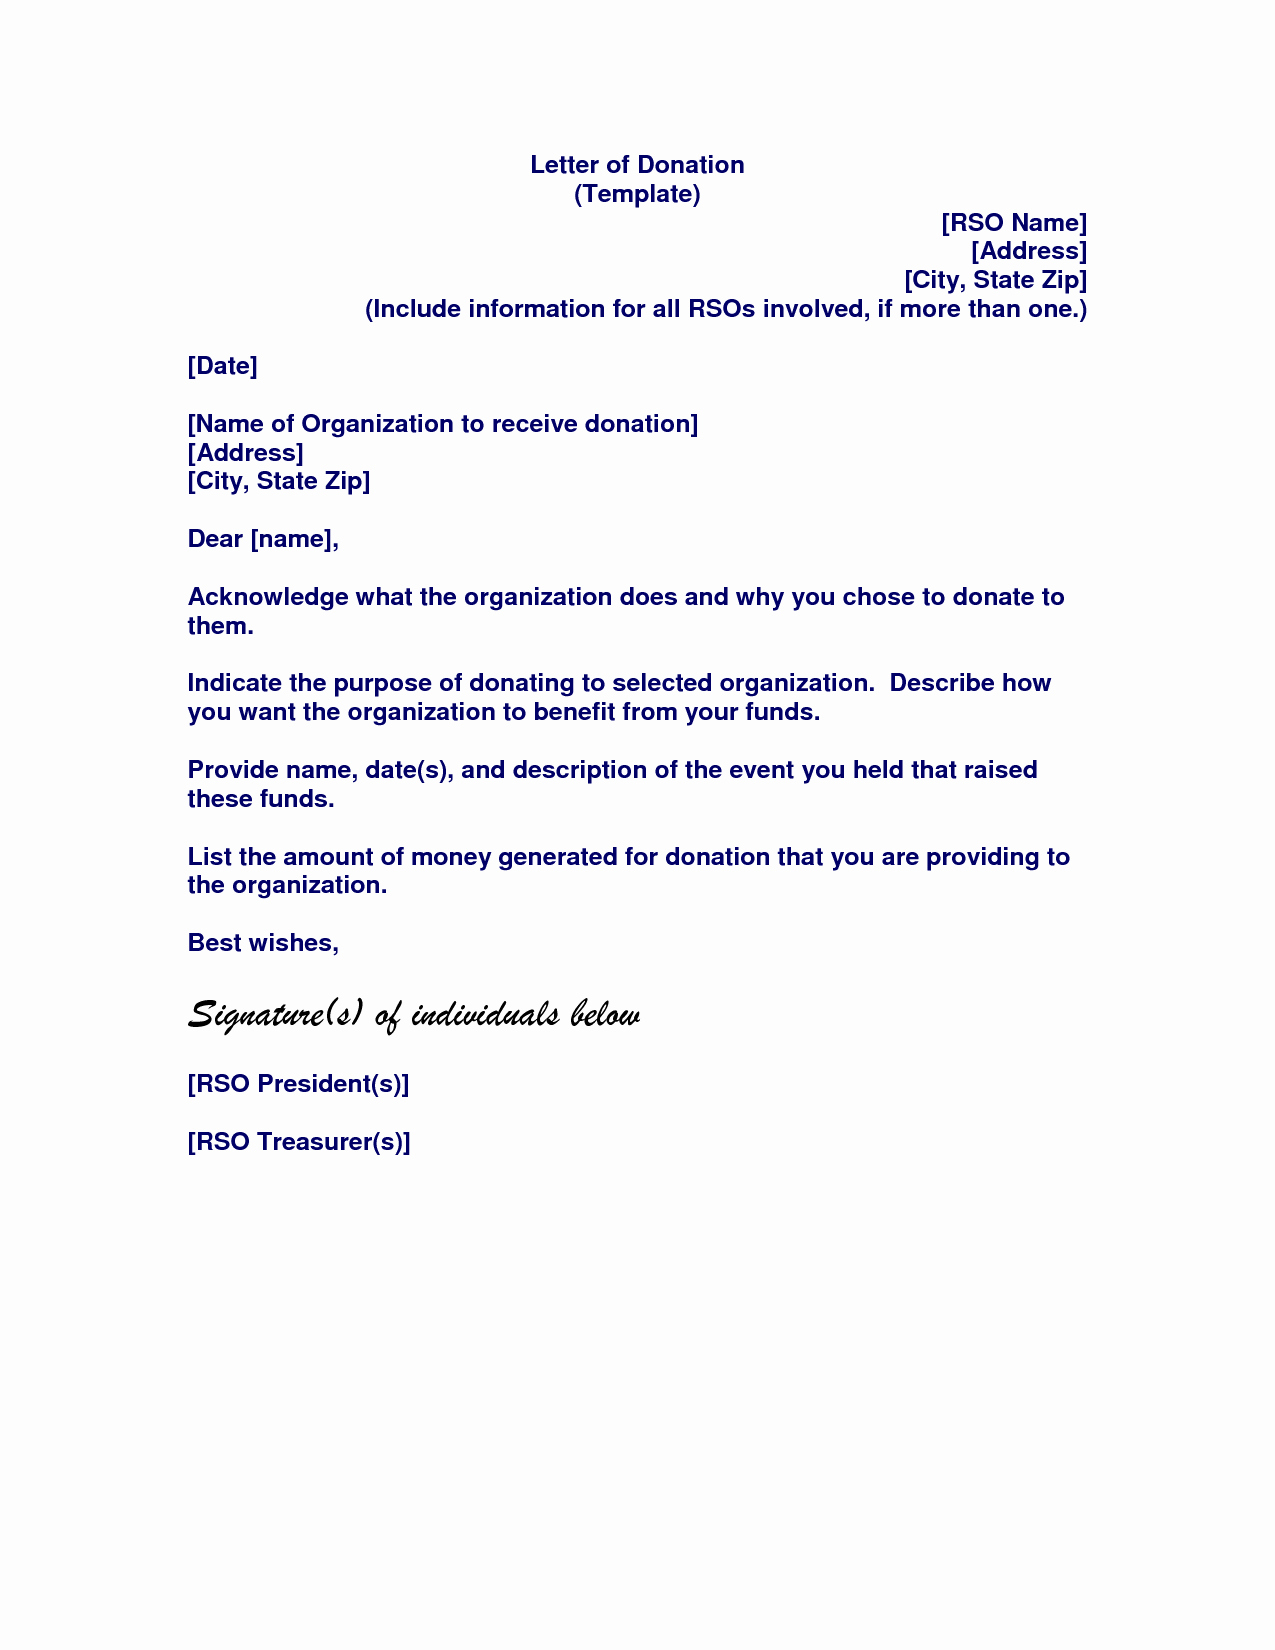 memorial donation letter template Collection-memorial donation letter template 11-h